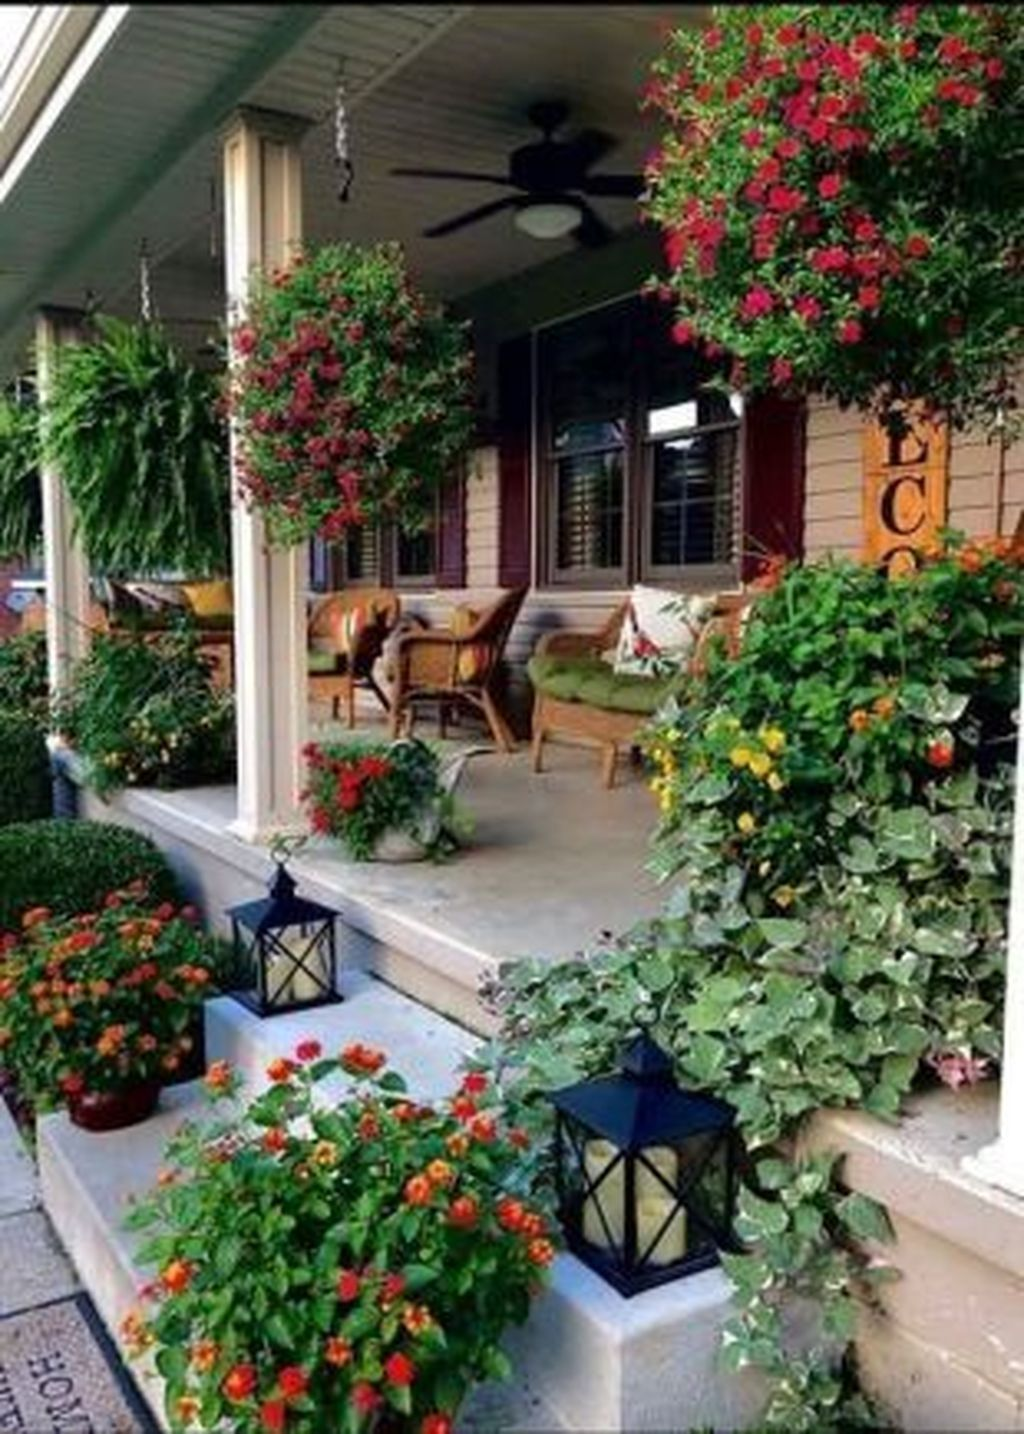 30 Cozy Front Porch Design And Decor Ideas For You Asap Small Flower Gardens Front Porch Decorating Front Porch Design